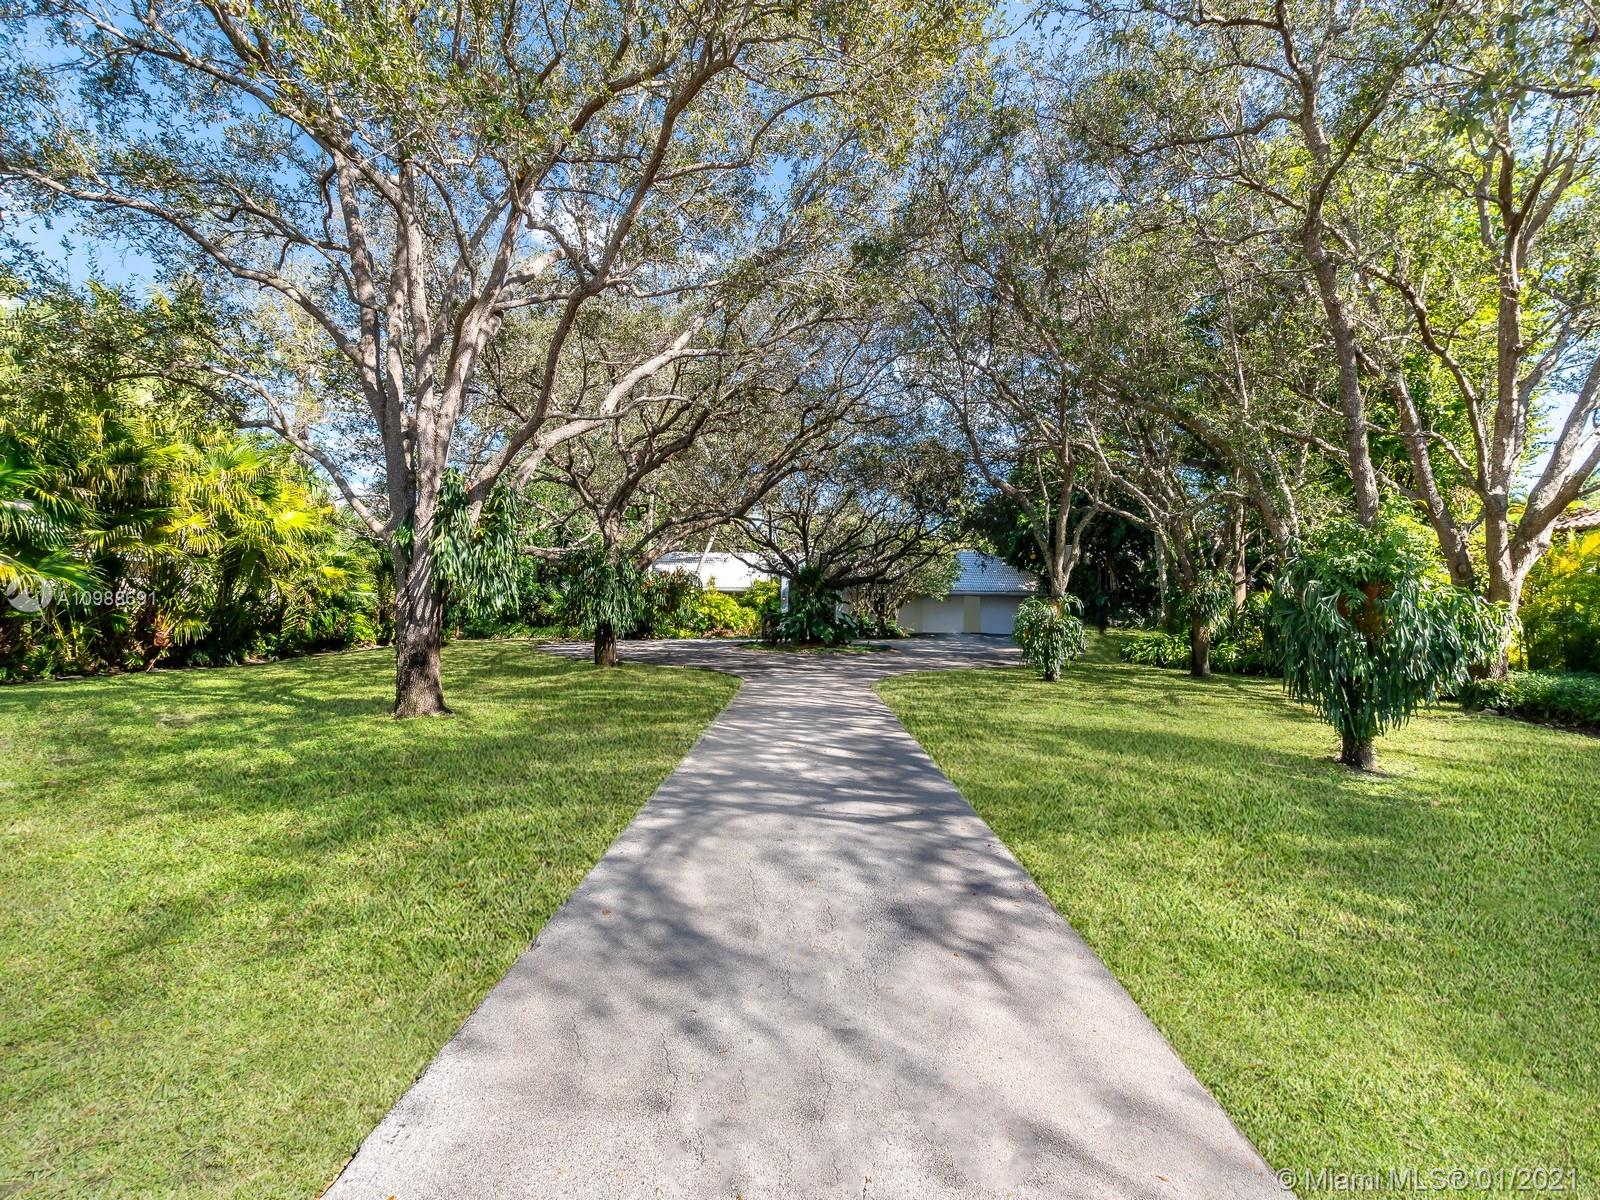 Lavish Gated ONE ACRE Estate on Highly Desired Ponce Davis. Strikingly beautiful 5 bed /6 bath on a gated 43,560 SF Lot with sprawling 6333 SF Liv Ideal family compound, with family friendly communal spaces yet elegant and tropical chic for entertaining. Formal living room with fireplace. Master suite with its own library / office and spa-like bathroom, covered terrace courtyard style pool area, with vast outdoor terraces with entertaining areas embracing South Florida living.  All 5 bedrooms have private en suite bathrooms.  Mature oak orchard entrance with circular driveway 2 car garage.  Walking distance to premiere schools in South Florida. Remodeled in 1999 and updated in 2018. Take Advantage of this amazing opportunity in Ponce Davis!